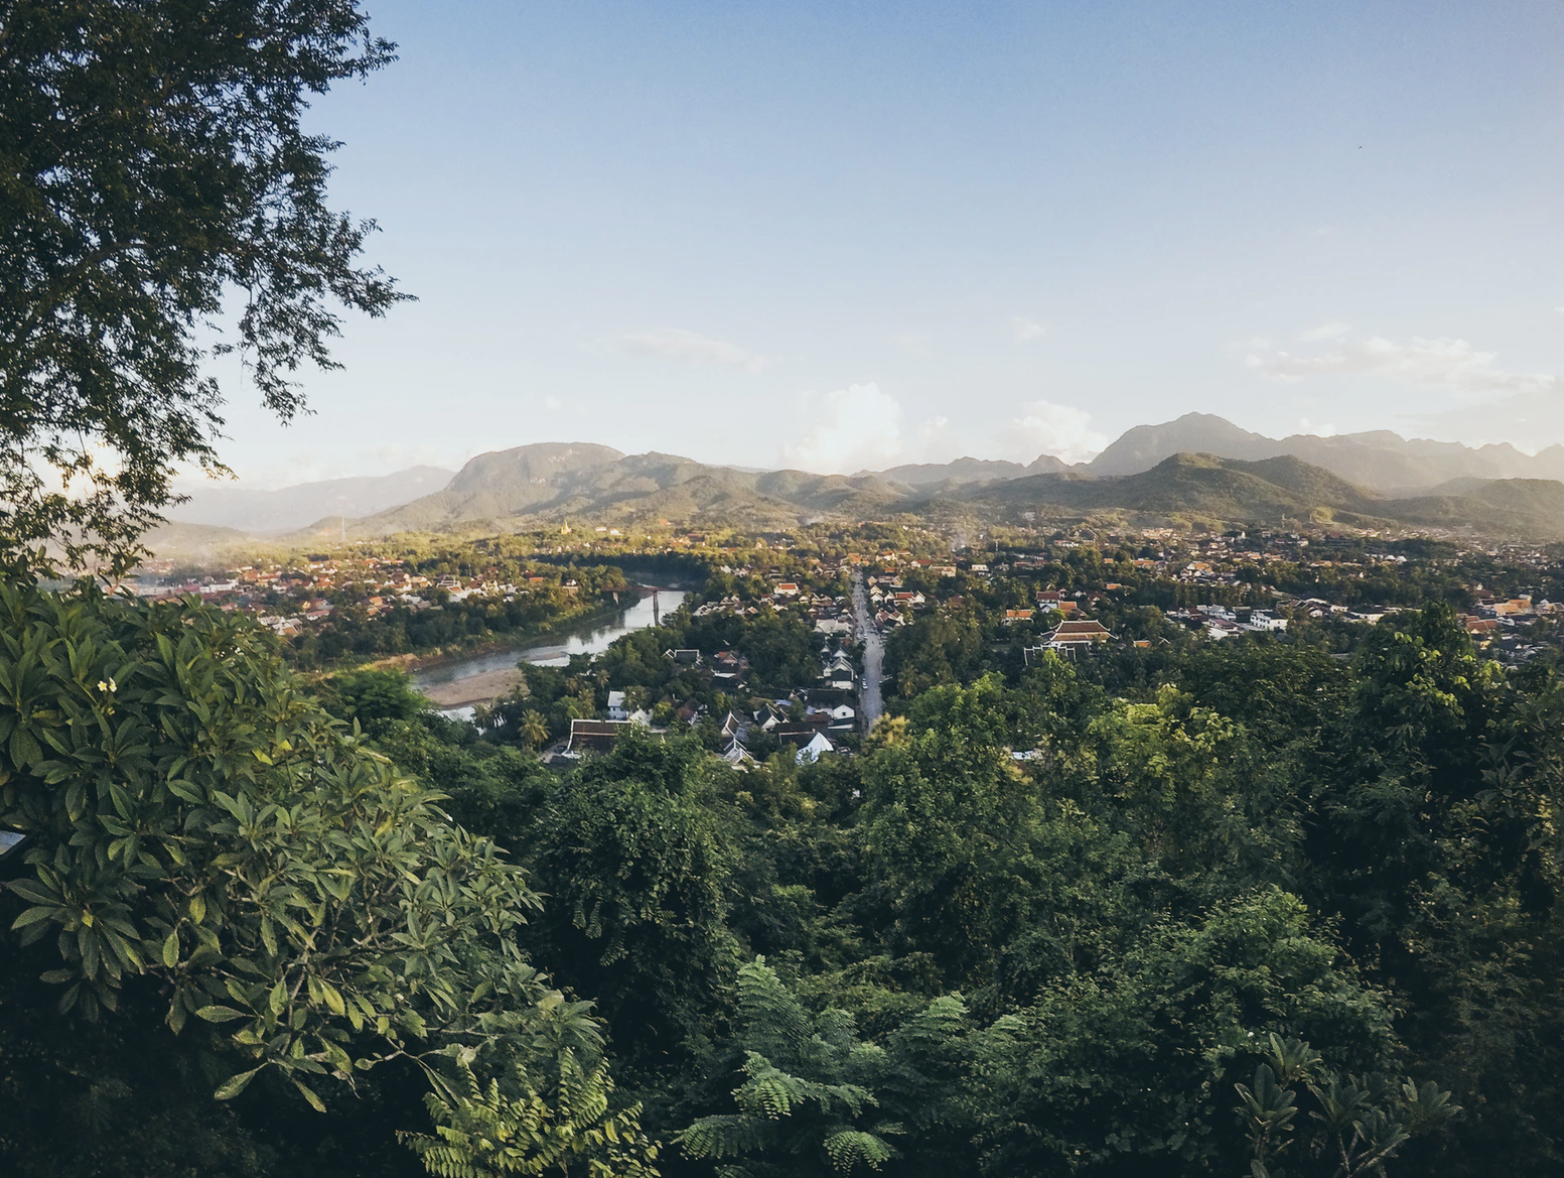 Luang Prabang, Laos, has breathtaking views. Photo courtesy: unsplash.com